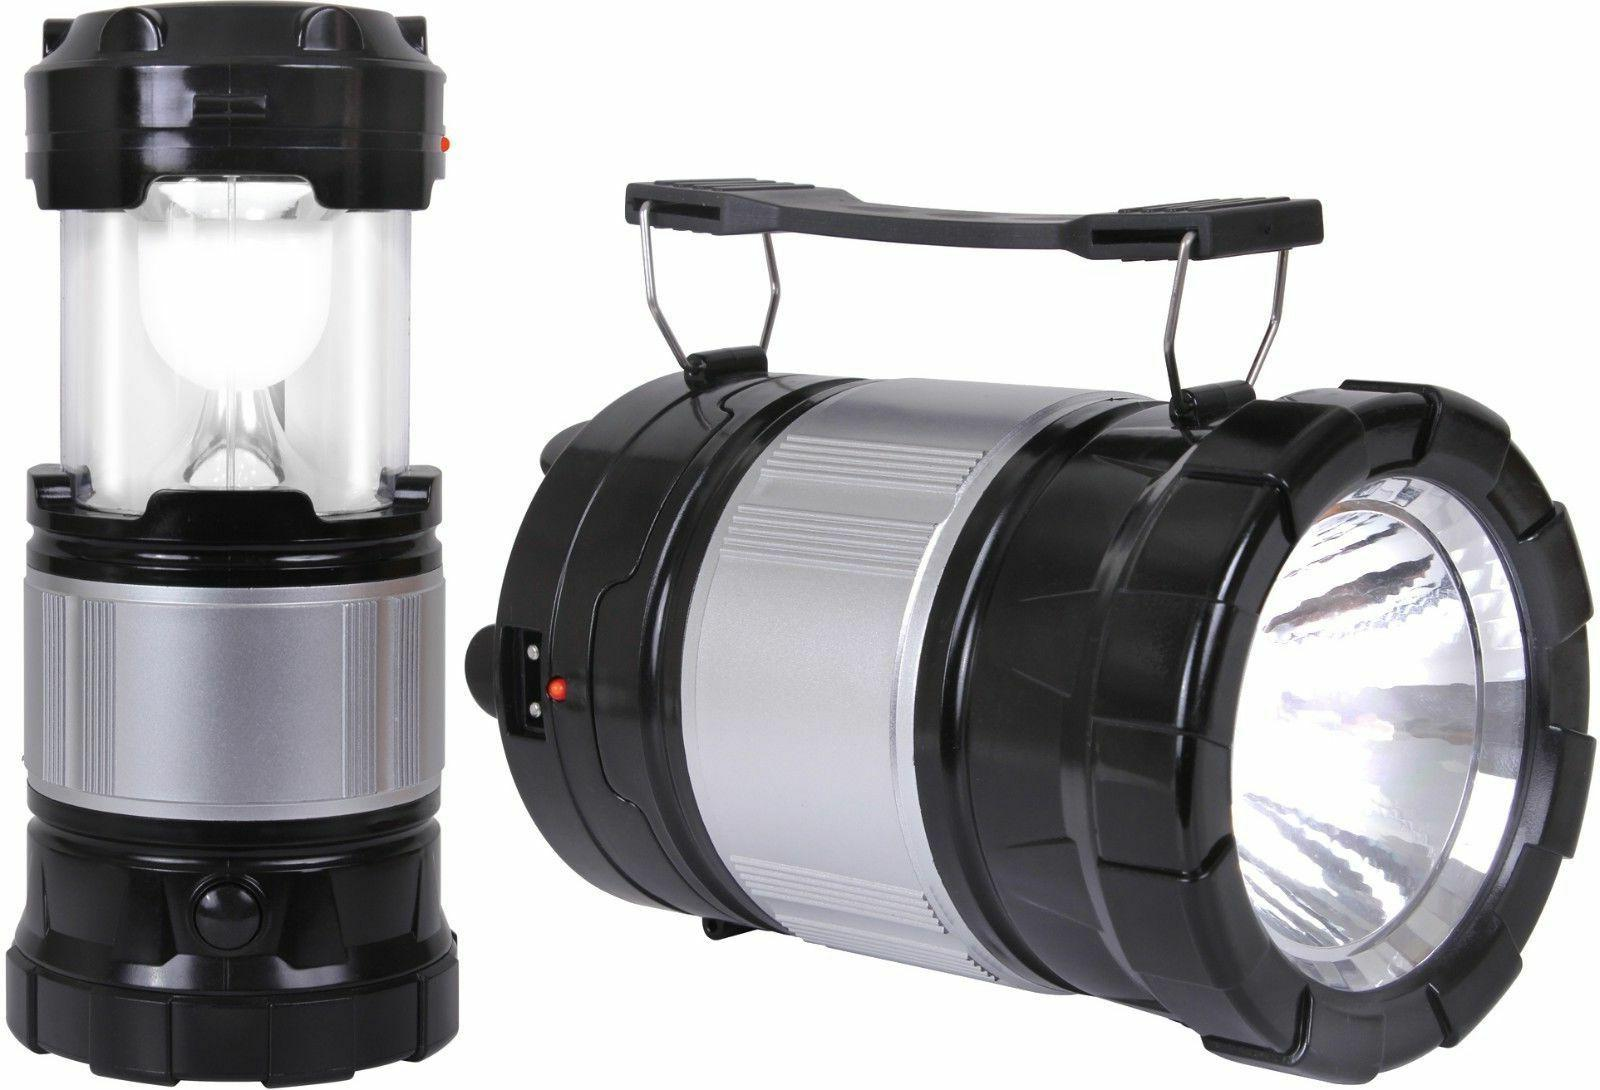 Solar Lantern Torch LED Light with Rechargeable Battery & US